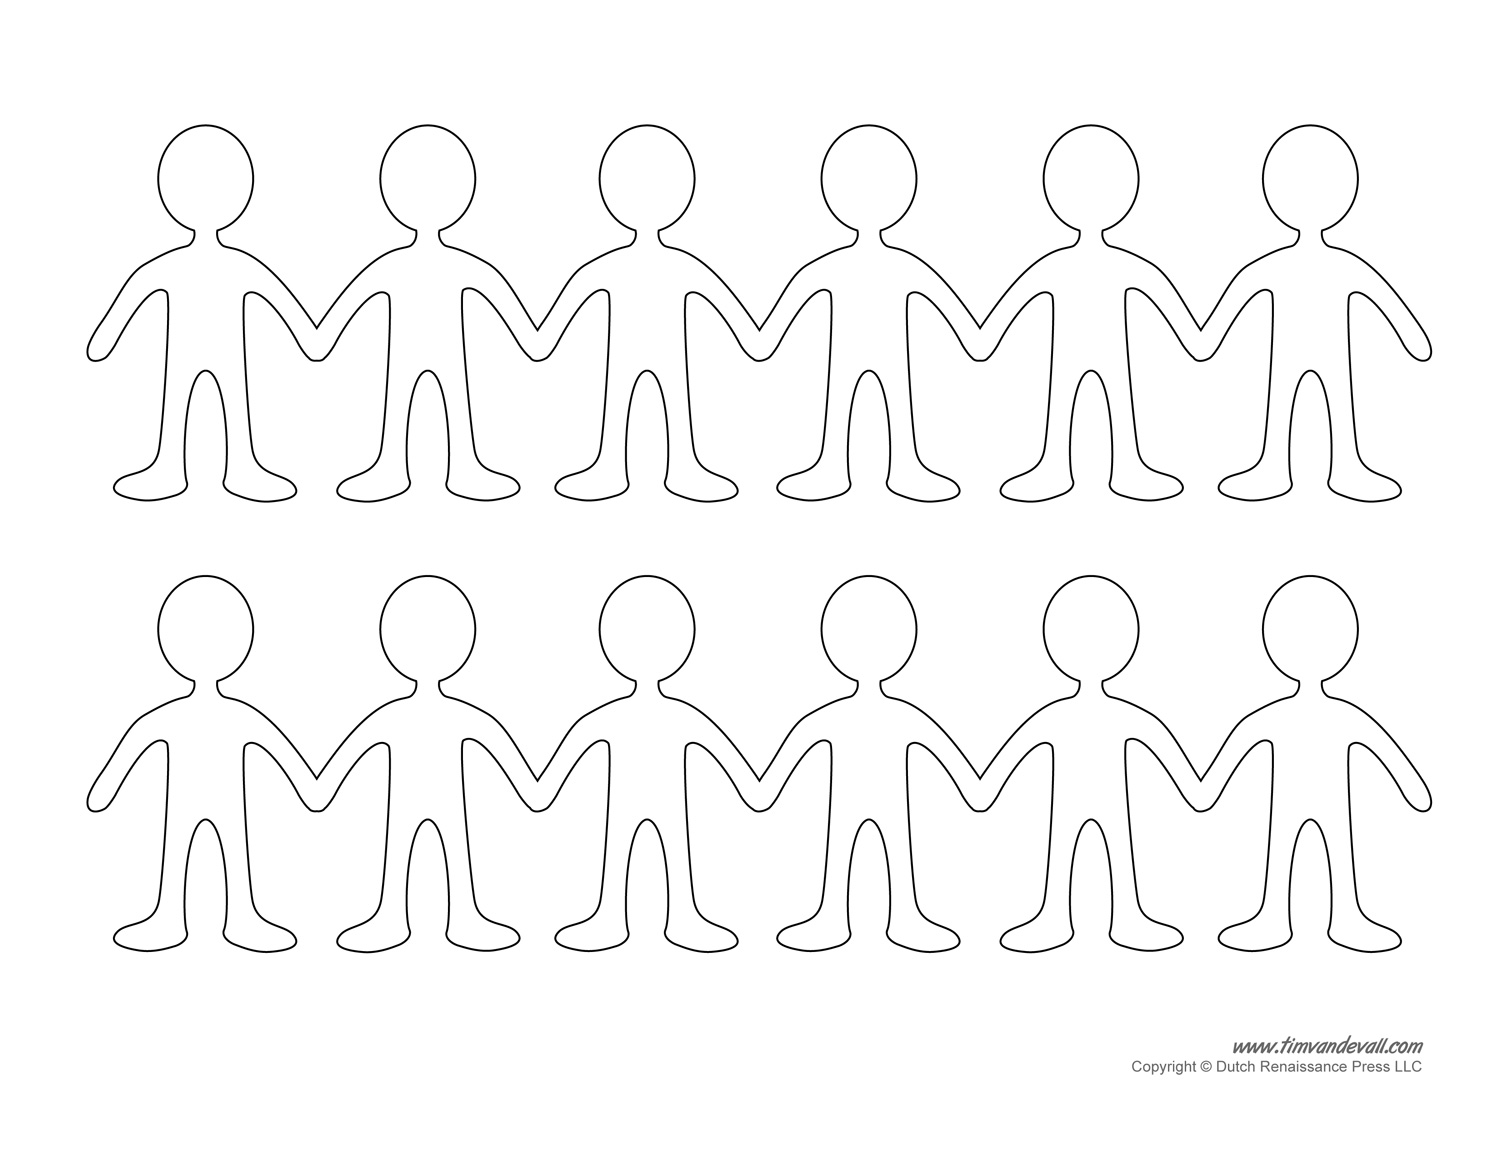 Printable Paper Doll Templates | Make Your Own Paper Dolls